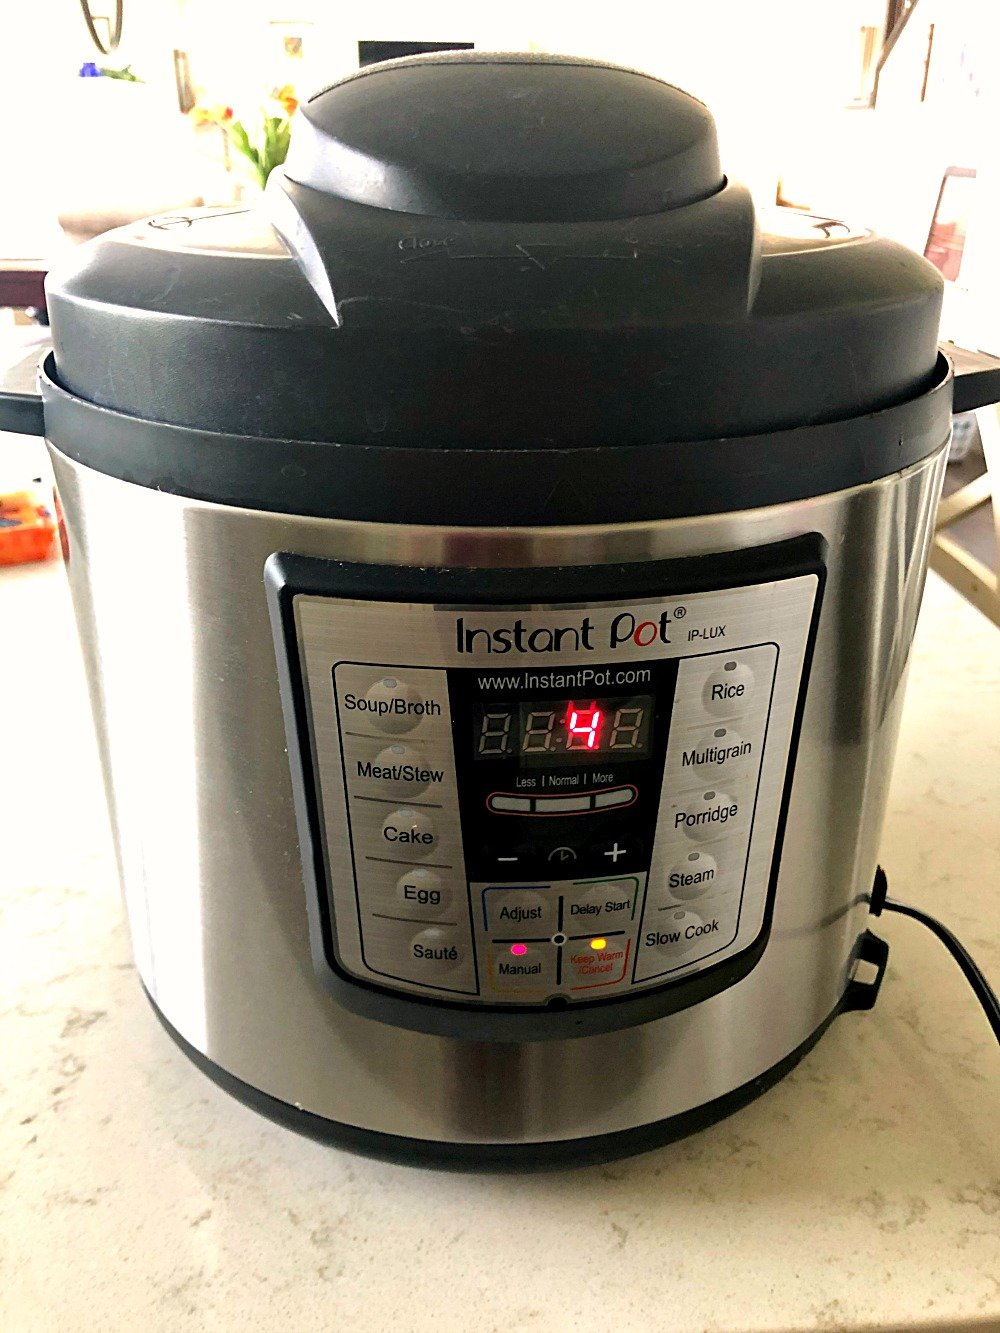 Instant pot set at 4 minutes cook time